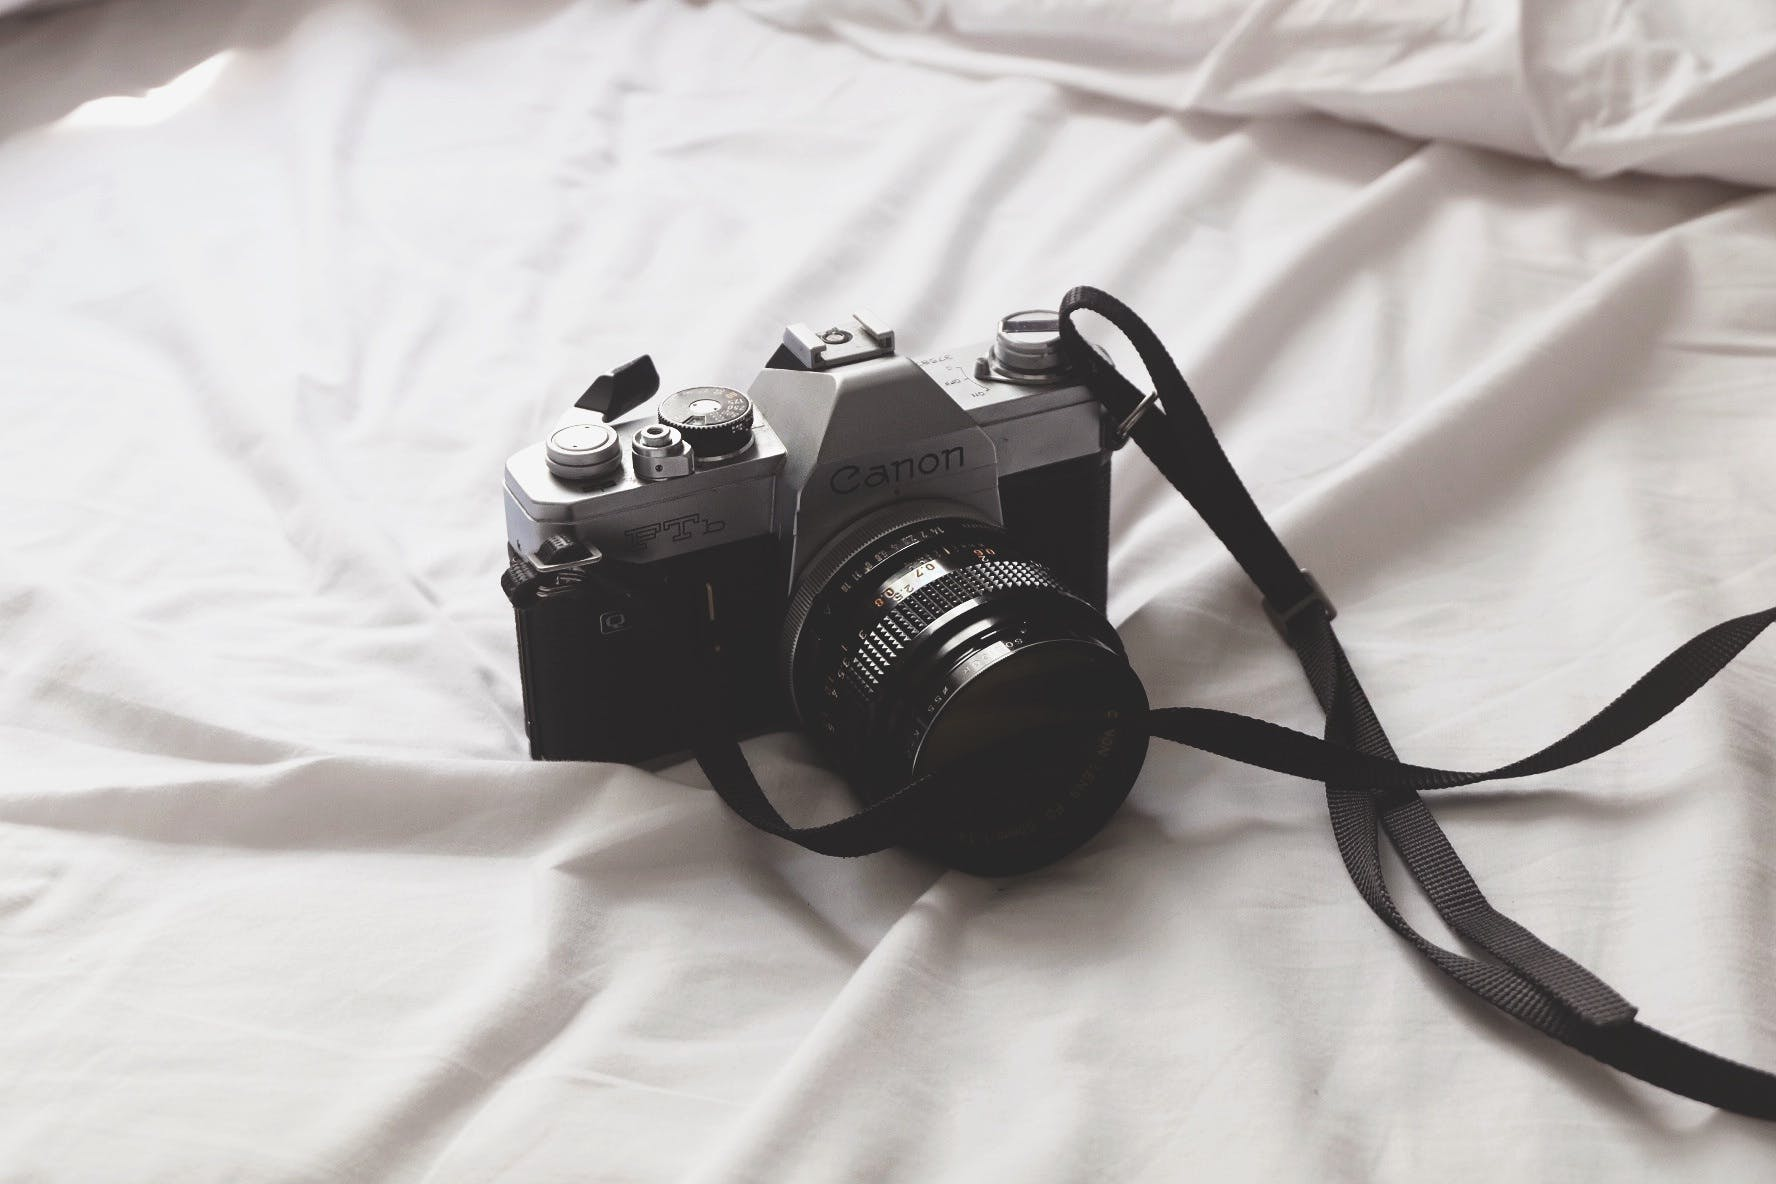 Free stock photo of camera, photography, professional, dslr